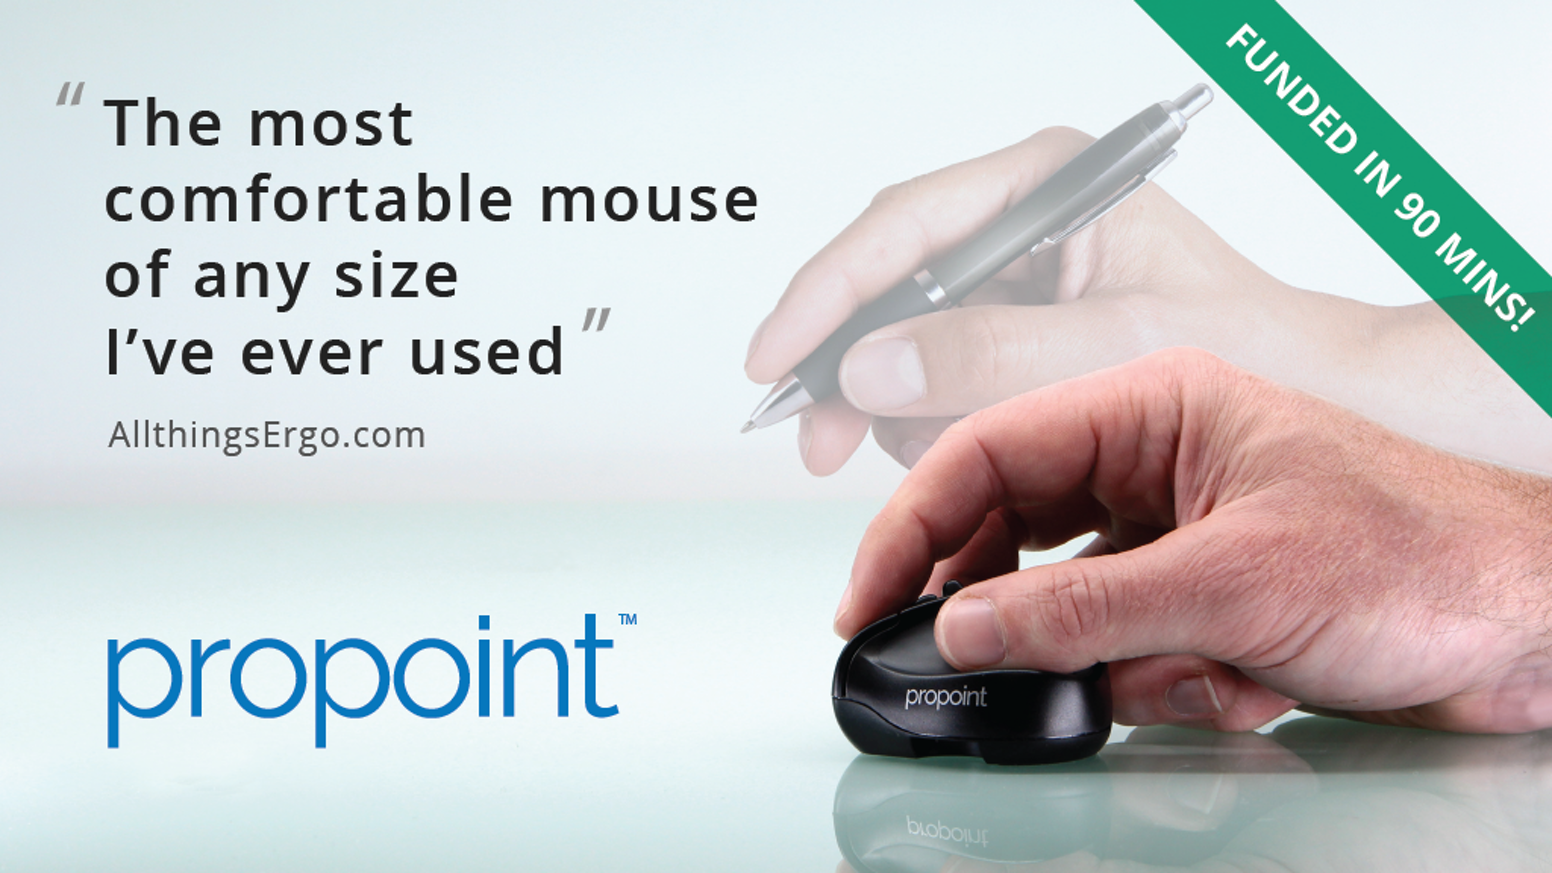 9e8607acdde ProPoint™ Mouse & Presenter. PC/Mac/iPad, office or travel. by Grant Odgers  - Swiftpoint — Kickstarter